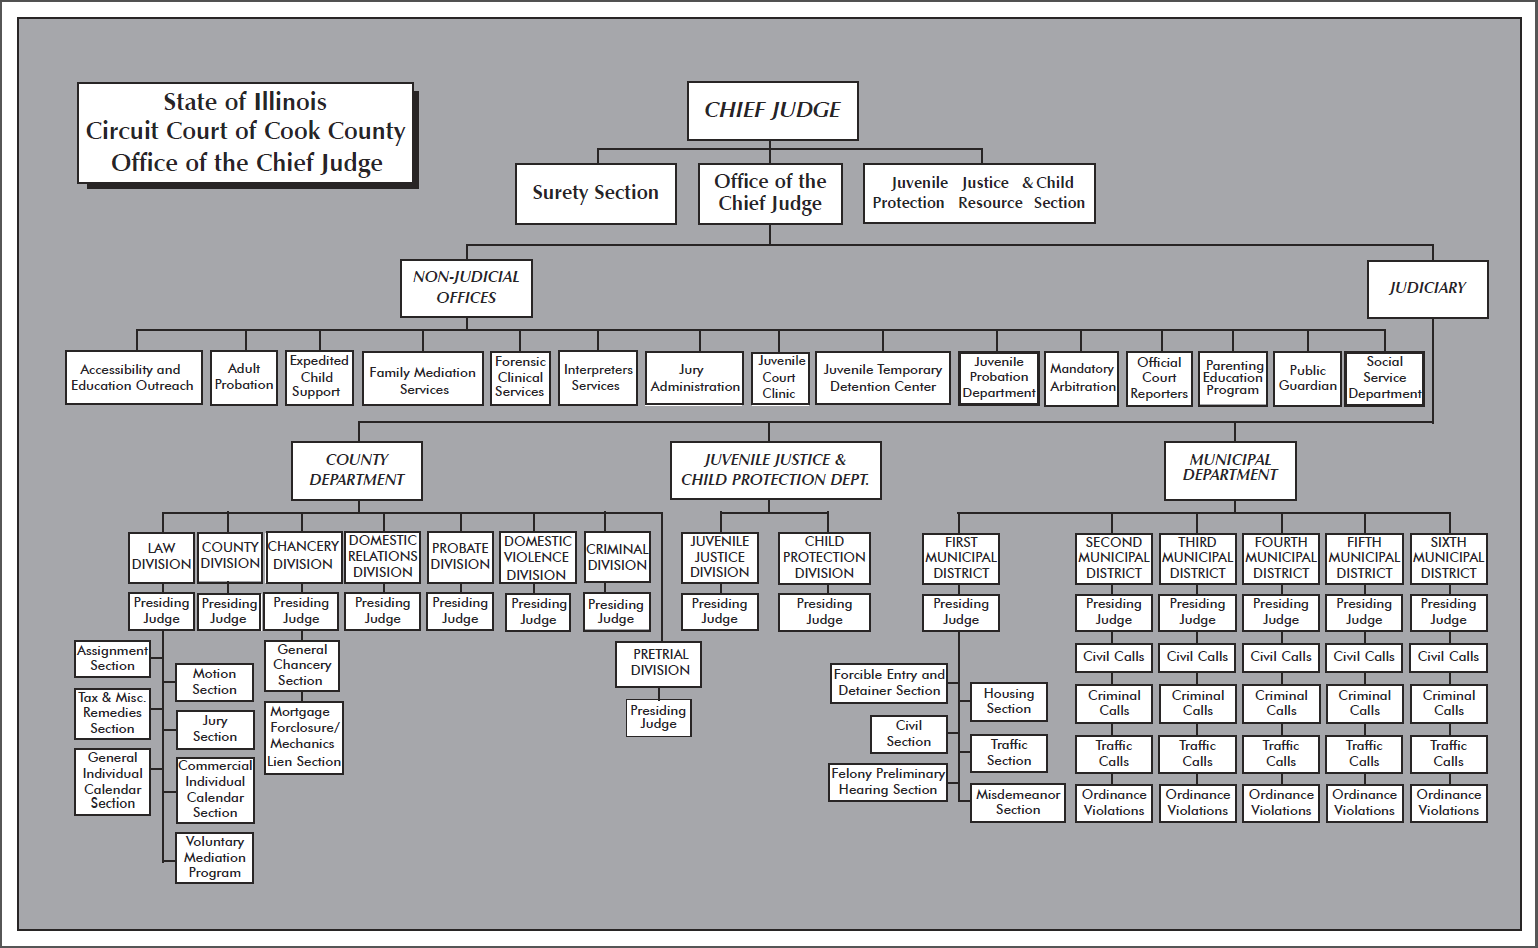 Organizational structure of the district court